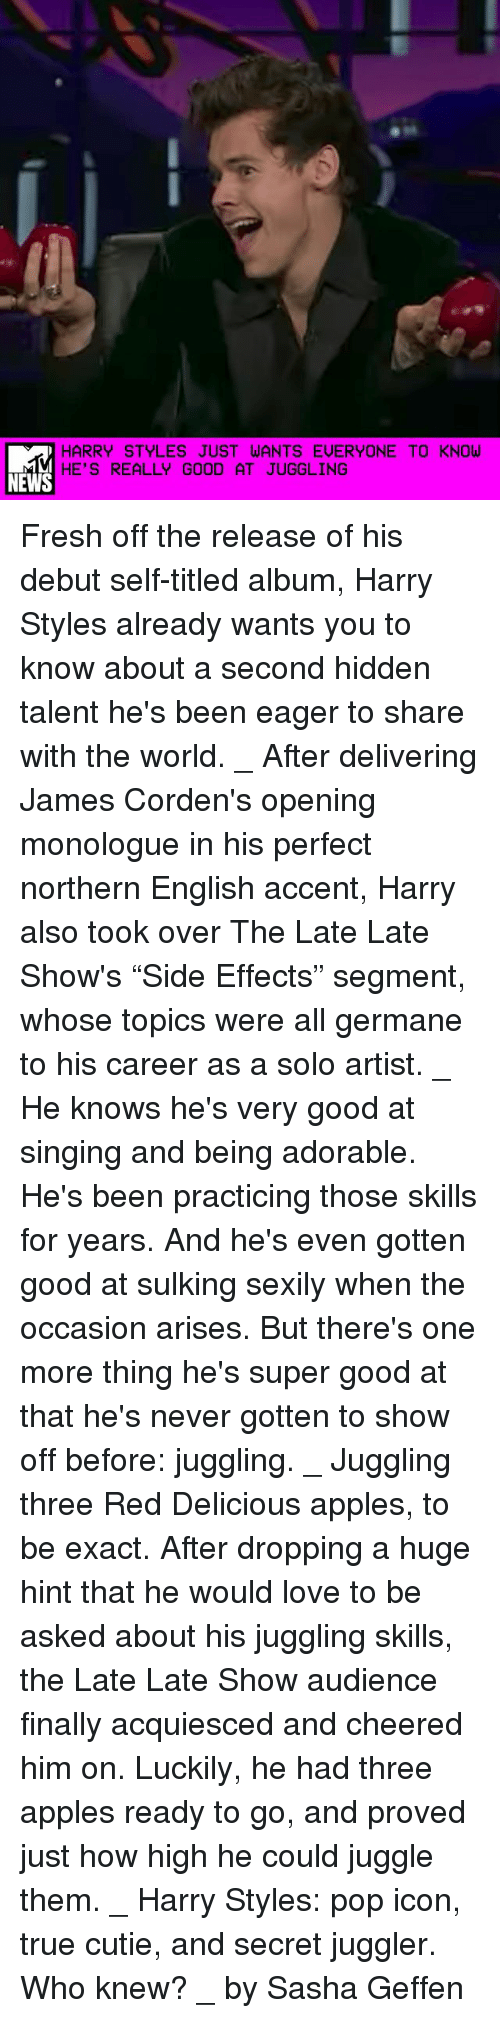 """Fresh, How High, and Love: HARRY STYLES JUST WANTS EUERYONE TO KNOW  HE'S REALLY GOOD AT JUGGLING  NEWS Fresh off the release of his debut self-titled album, Harry Styles already wants you to know about a second hidden talent he's been eager to share with the world. _ After delivering James Corden's opening monologue in his perfect northern English accent, Harry also took over The Late Late Show's """"Side Effects"""" segment, whose topics were all germane to his career as a solo artist. _ He knows he's very good at singing and being adorable. He's been practicing those skills for years. And he's even gotten good at sulking sexily when the occasion arises. But there's one more thing he's super good at that he's never gotten to show off before: juggling. _ Juggling three Red Delicious apples, to be exact. After dropping a huge hint that he would love to be asked about his juggling skills, the Late Late Show audience finally acquiesced and cheered him on. Luckily, he had three apples ready to go, and proved just how high he could juggle them. _ Harry Styles: pop icon, true cutie, and secret juggler. Who knew? _ by Sasha Geffen"""